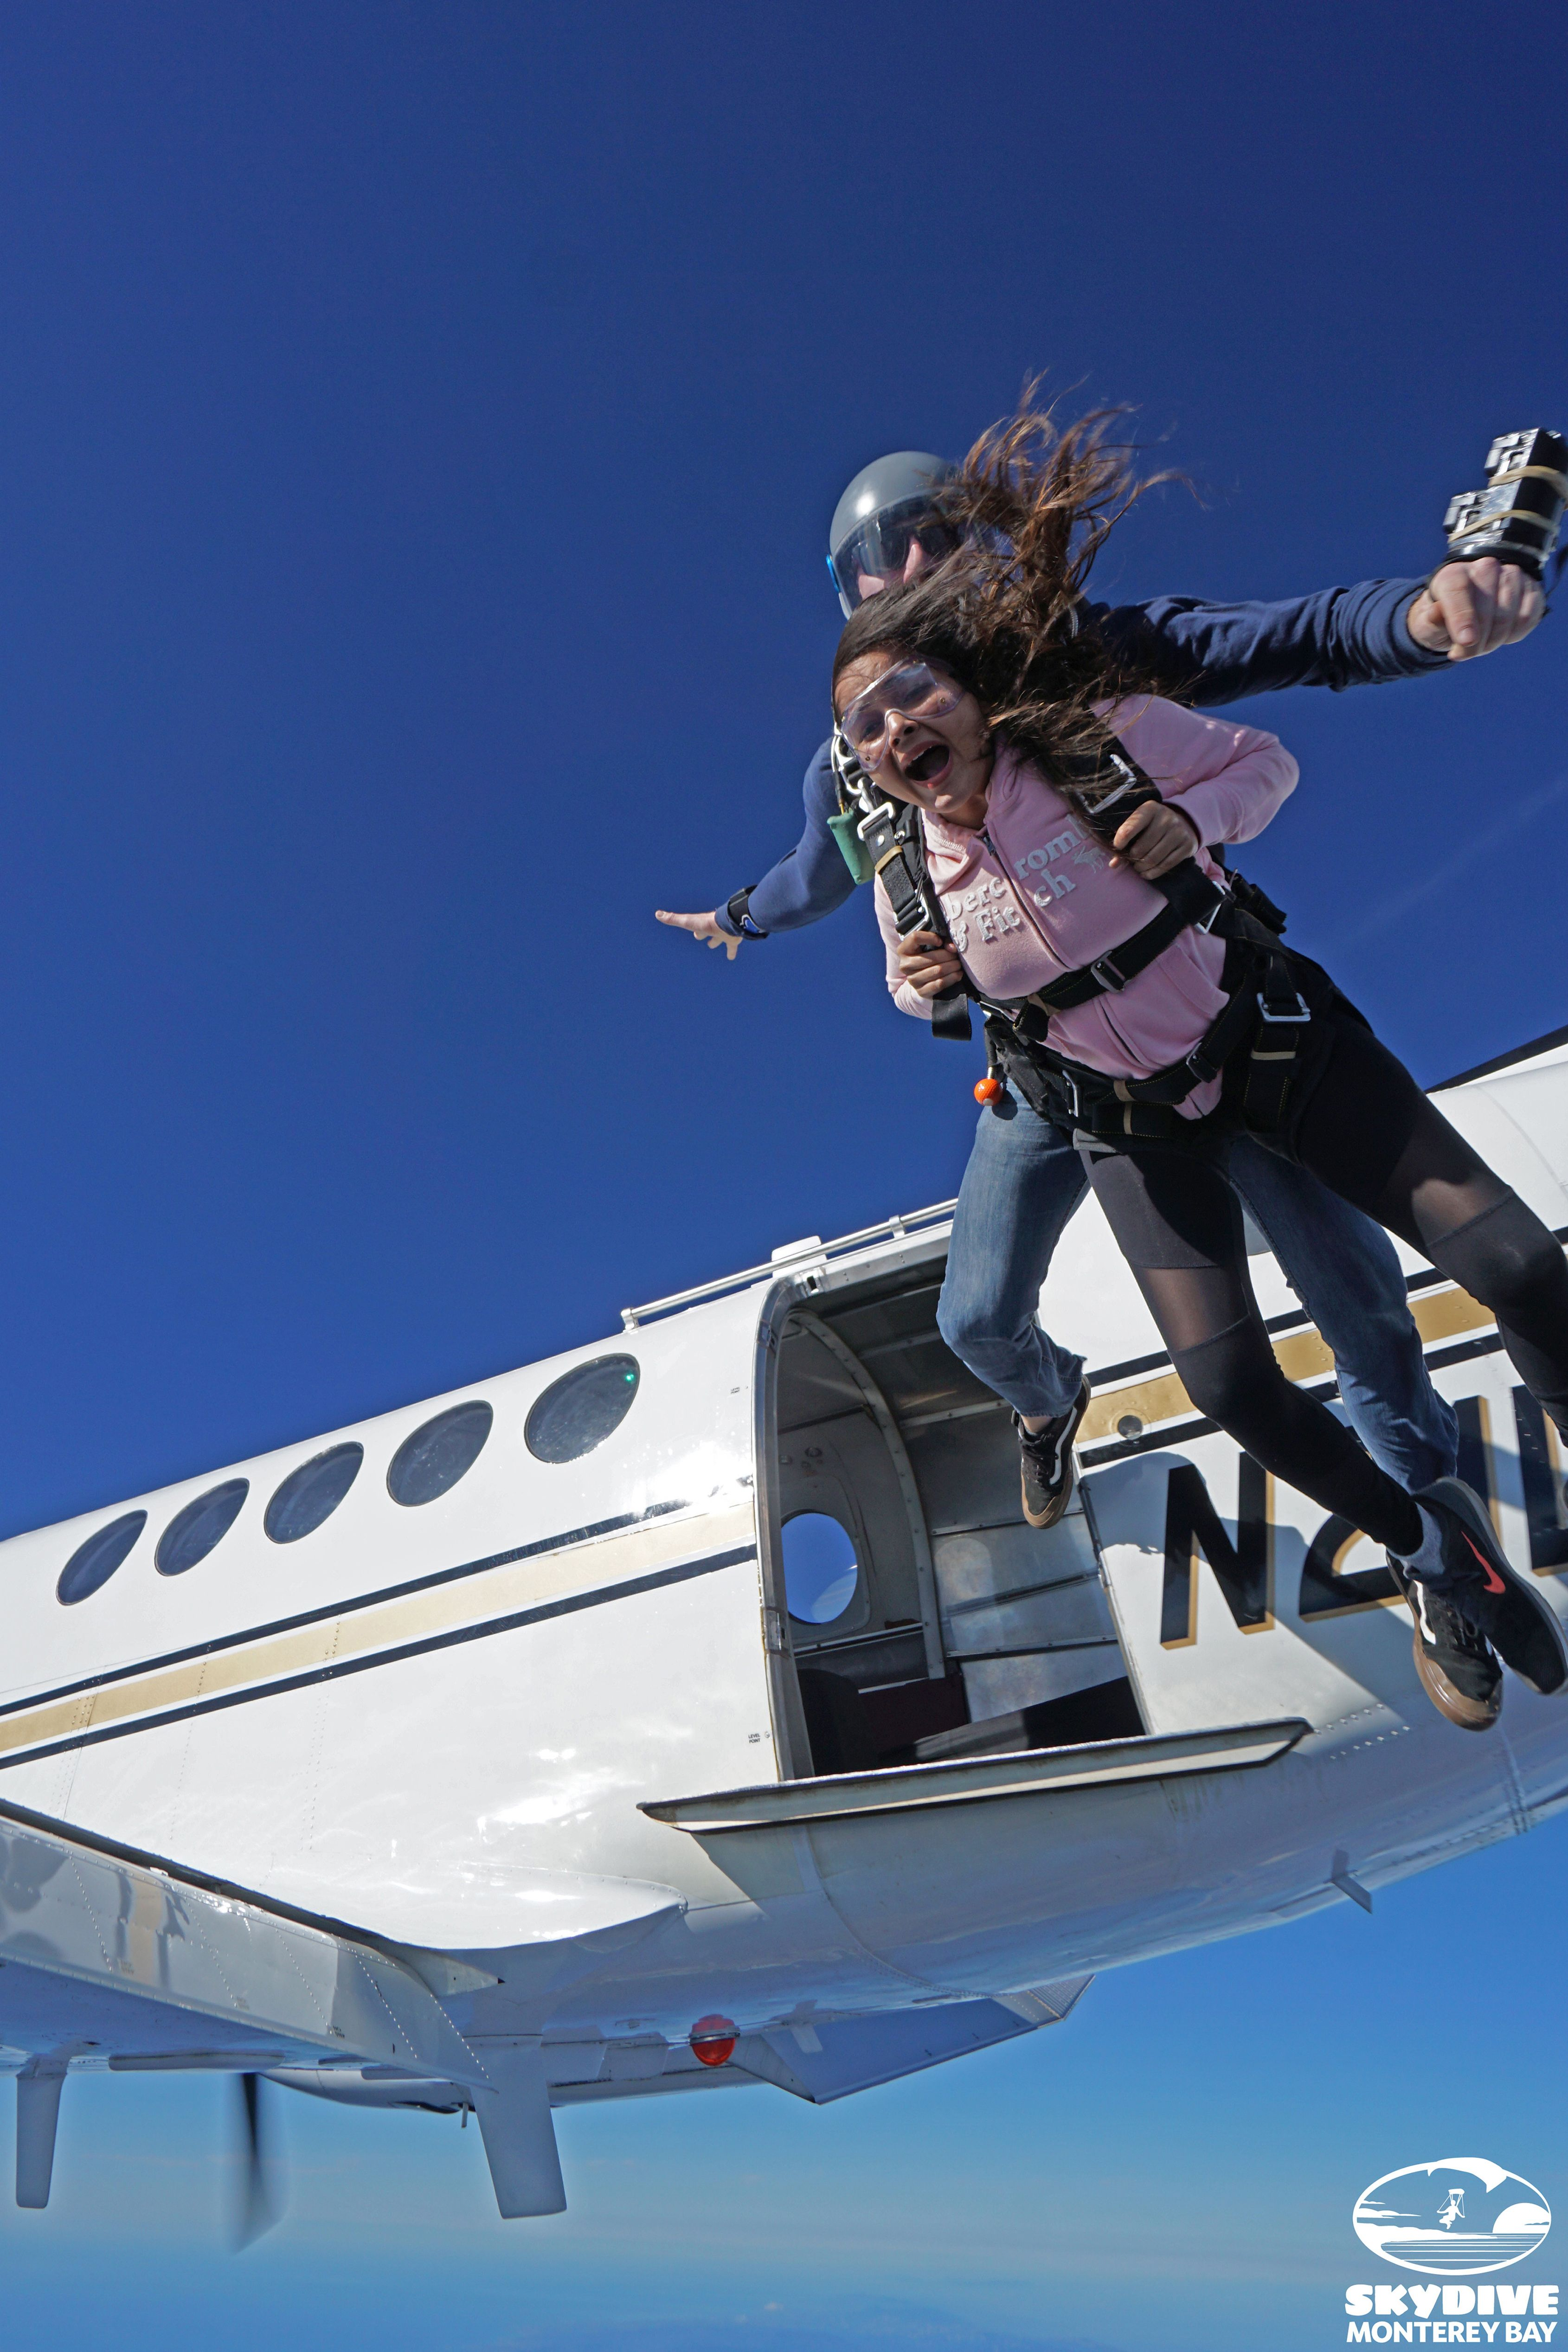 7 Steps to Prepare for your First Skydive Skydiving